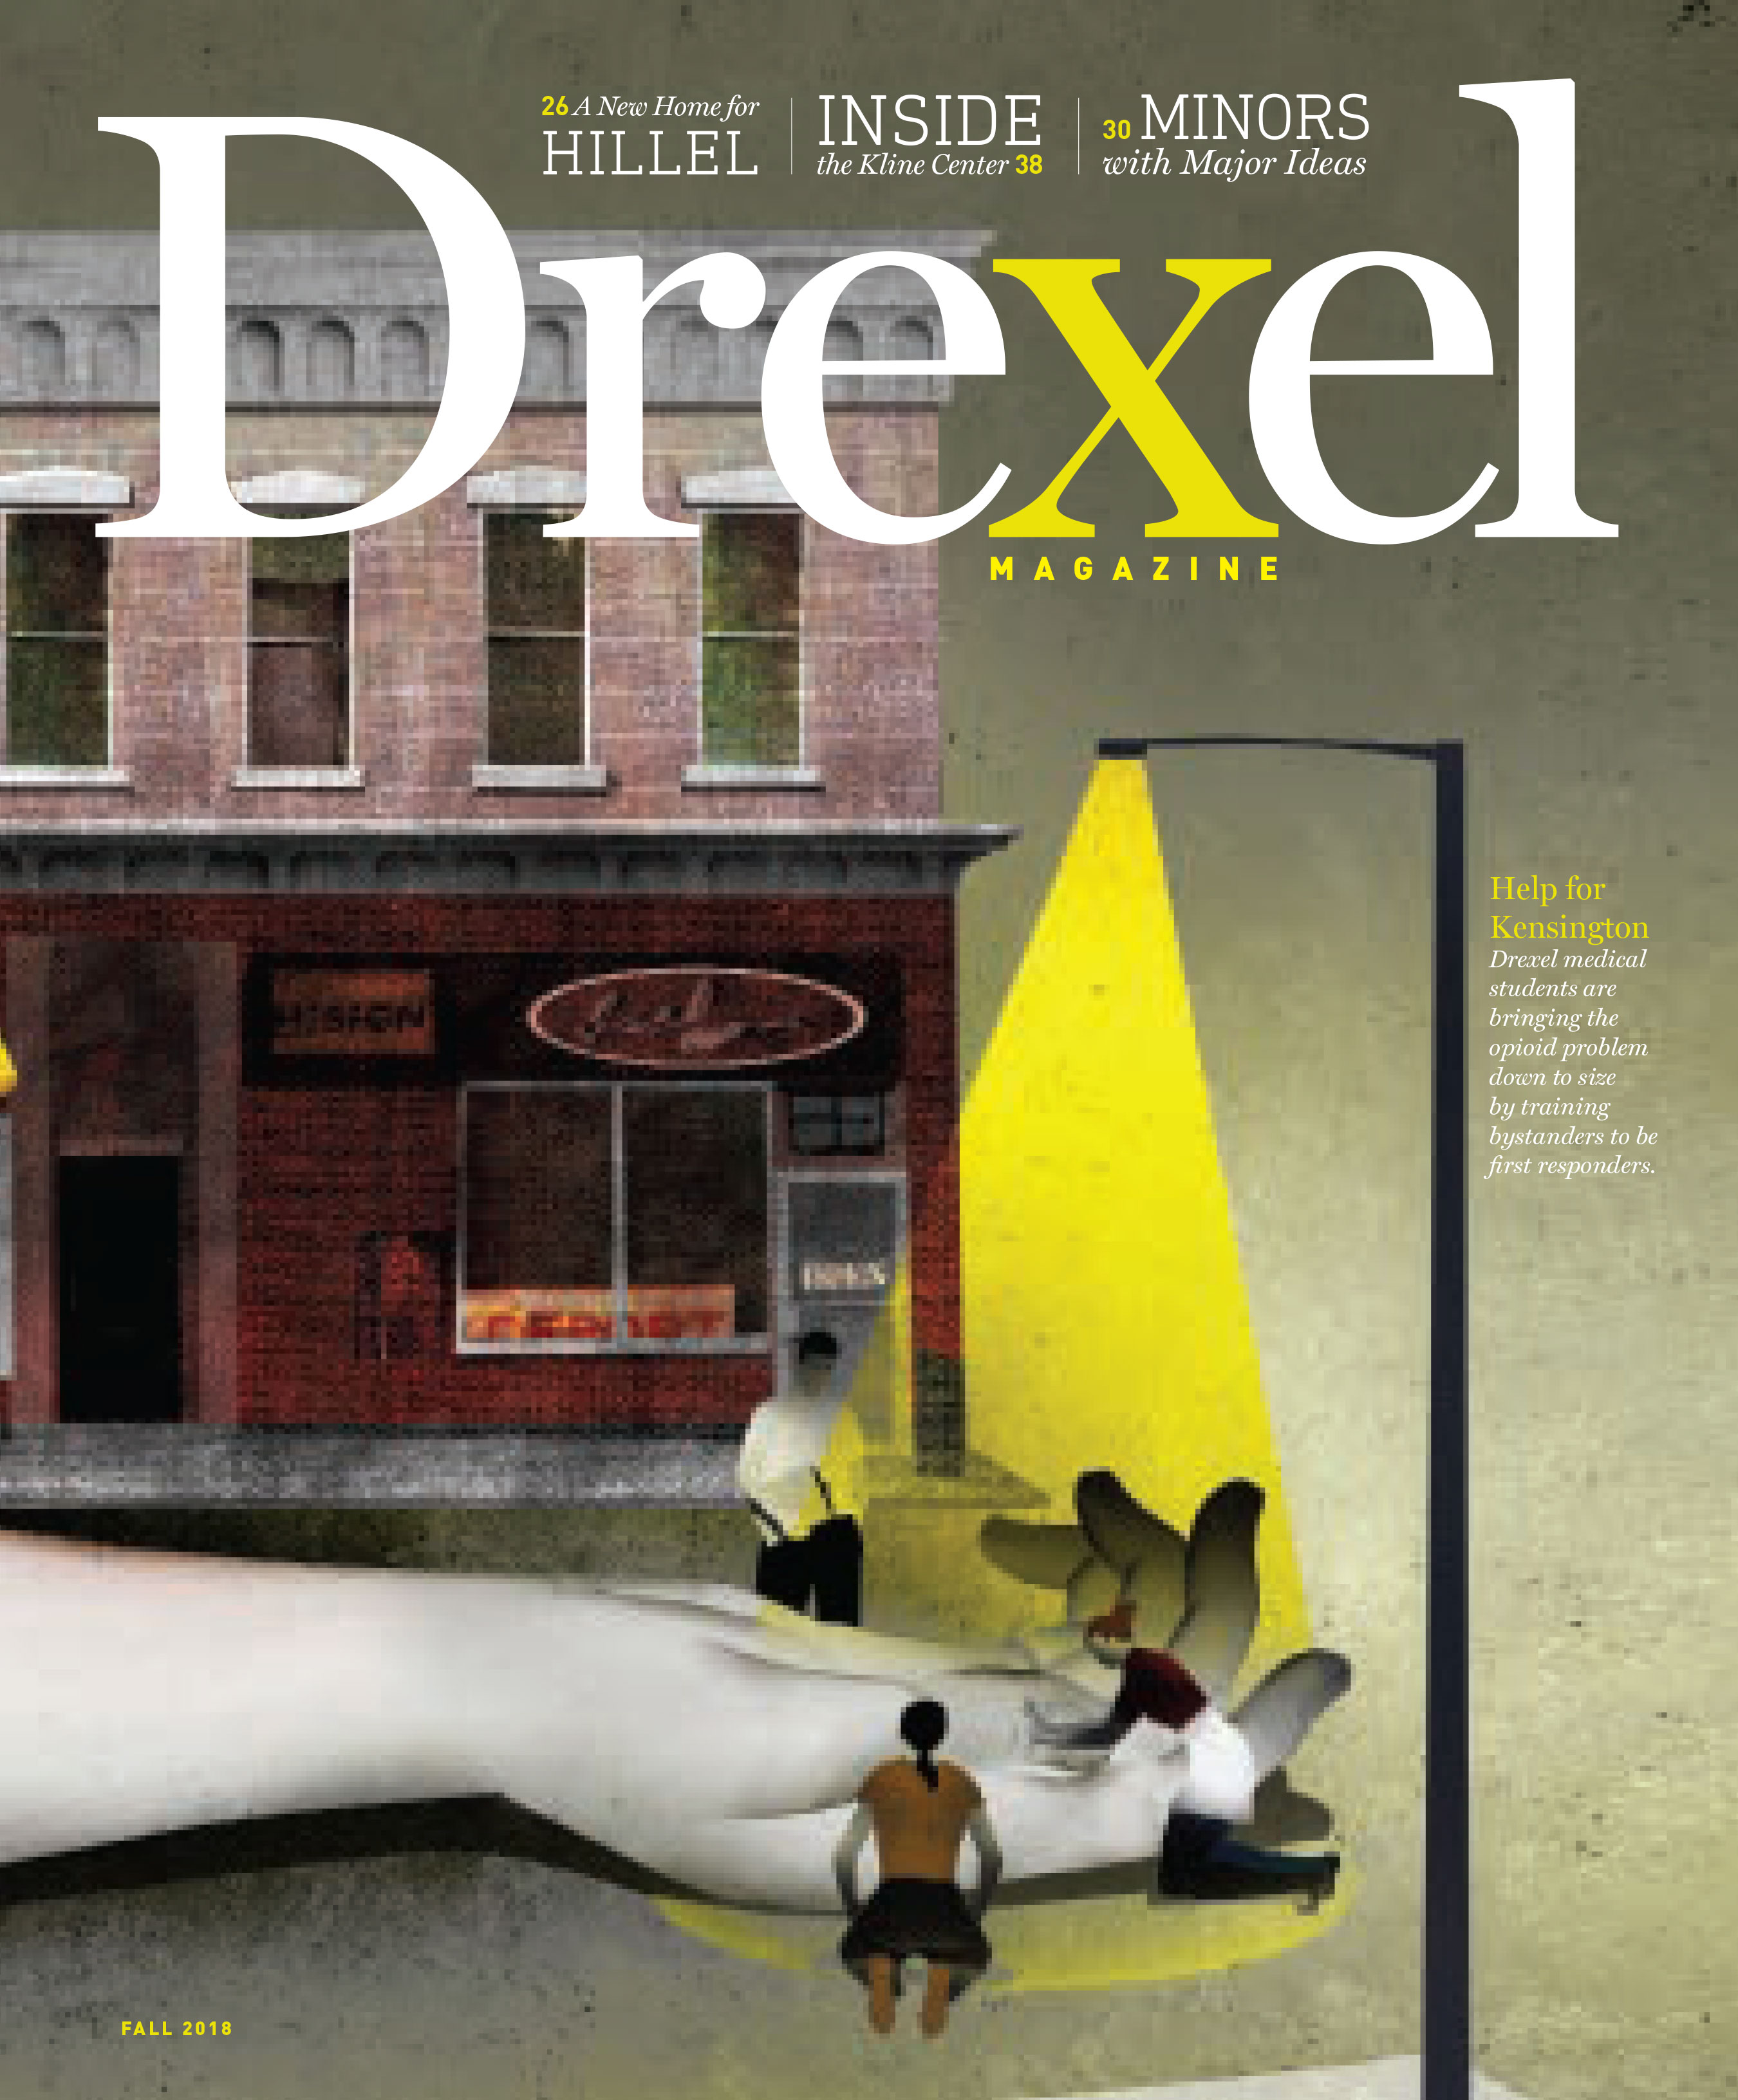 Fall 2018 Drexel Mag Cover